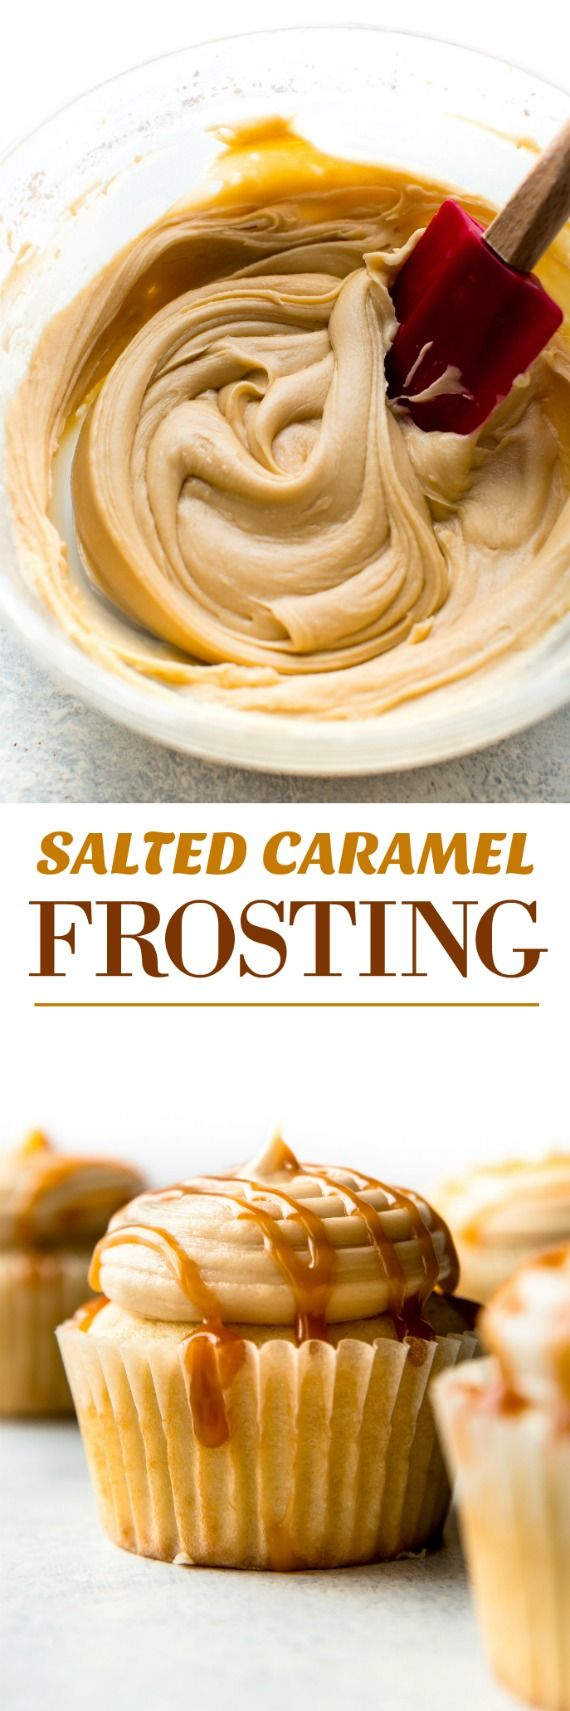 Salted Caramel Cake Recipe 25+ best salted caramel cake ideas on pinterest | carmel cake